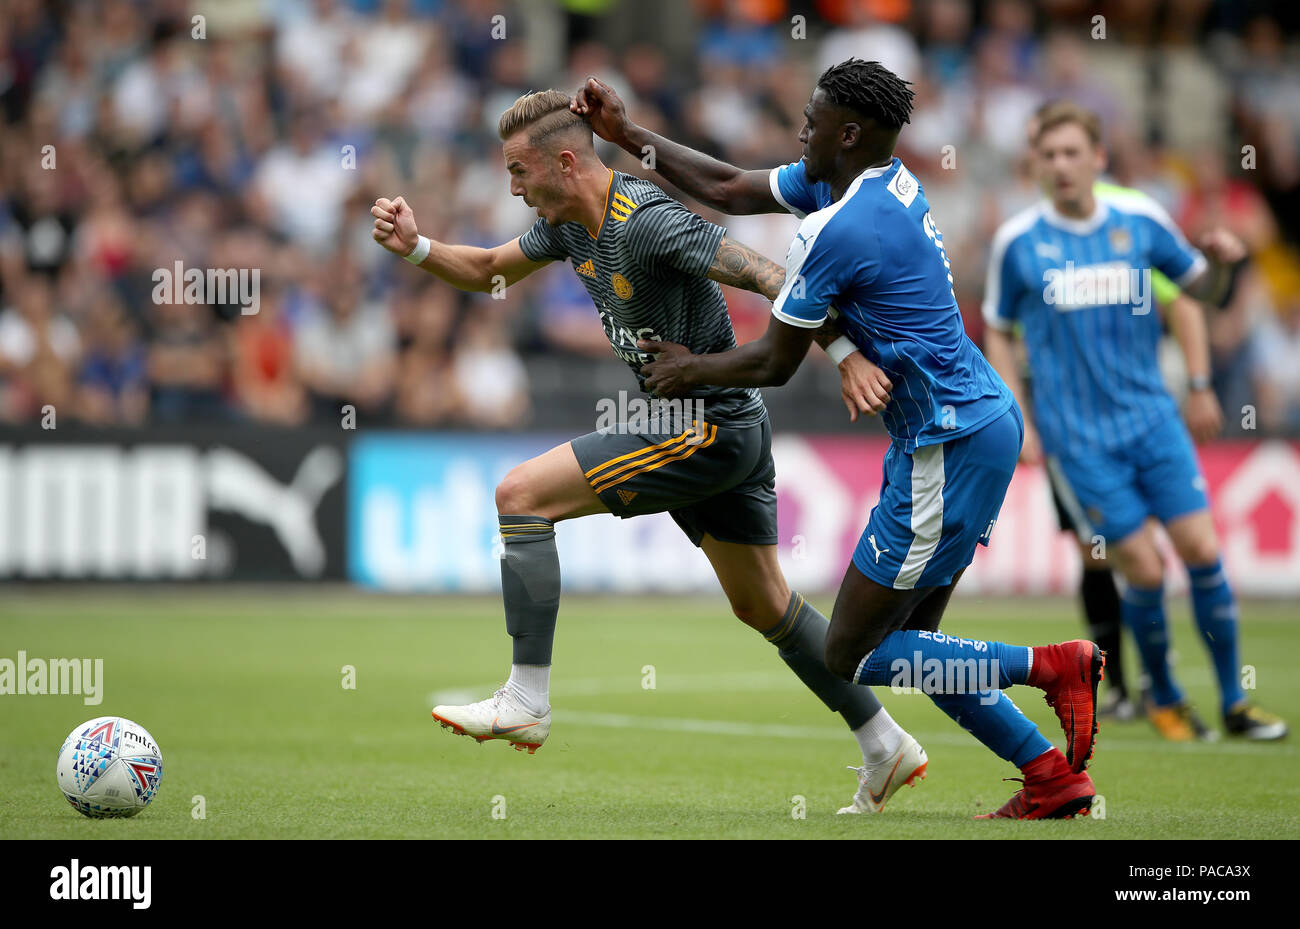 Leicester City's James Maddison (left) and Notts County's Enzio Boldewijn battle for the ball during a pre season friendly match at Meadow Lane, Nottingham. - Stock Image